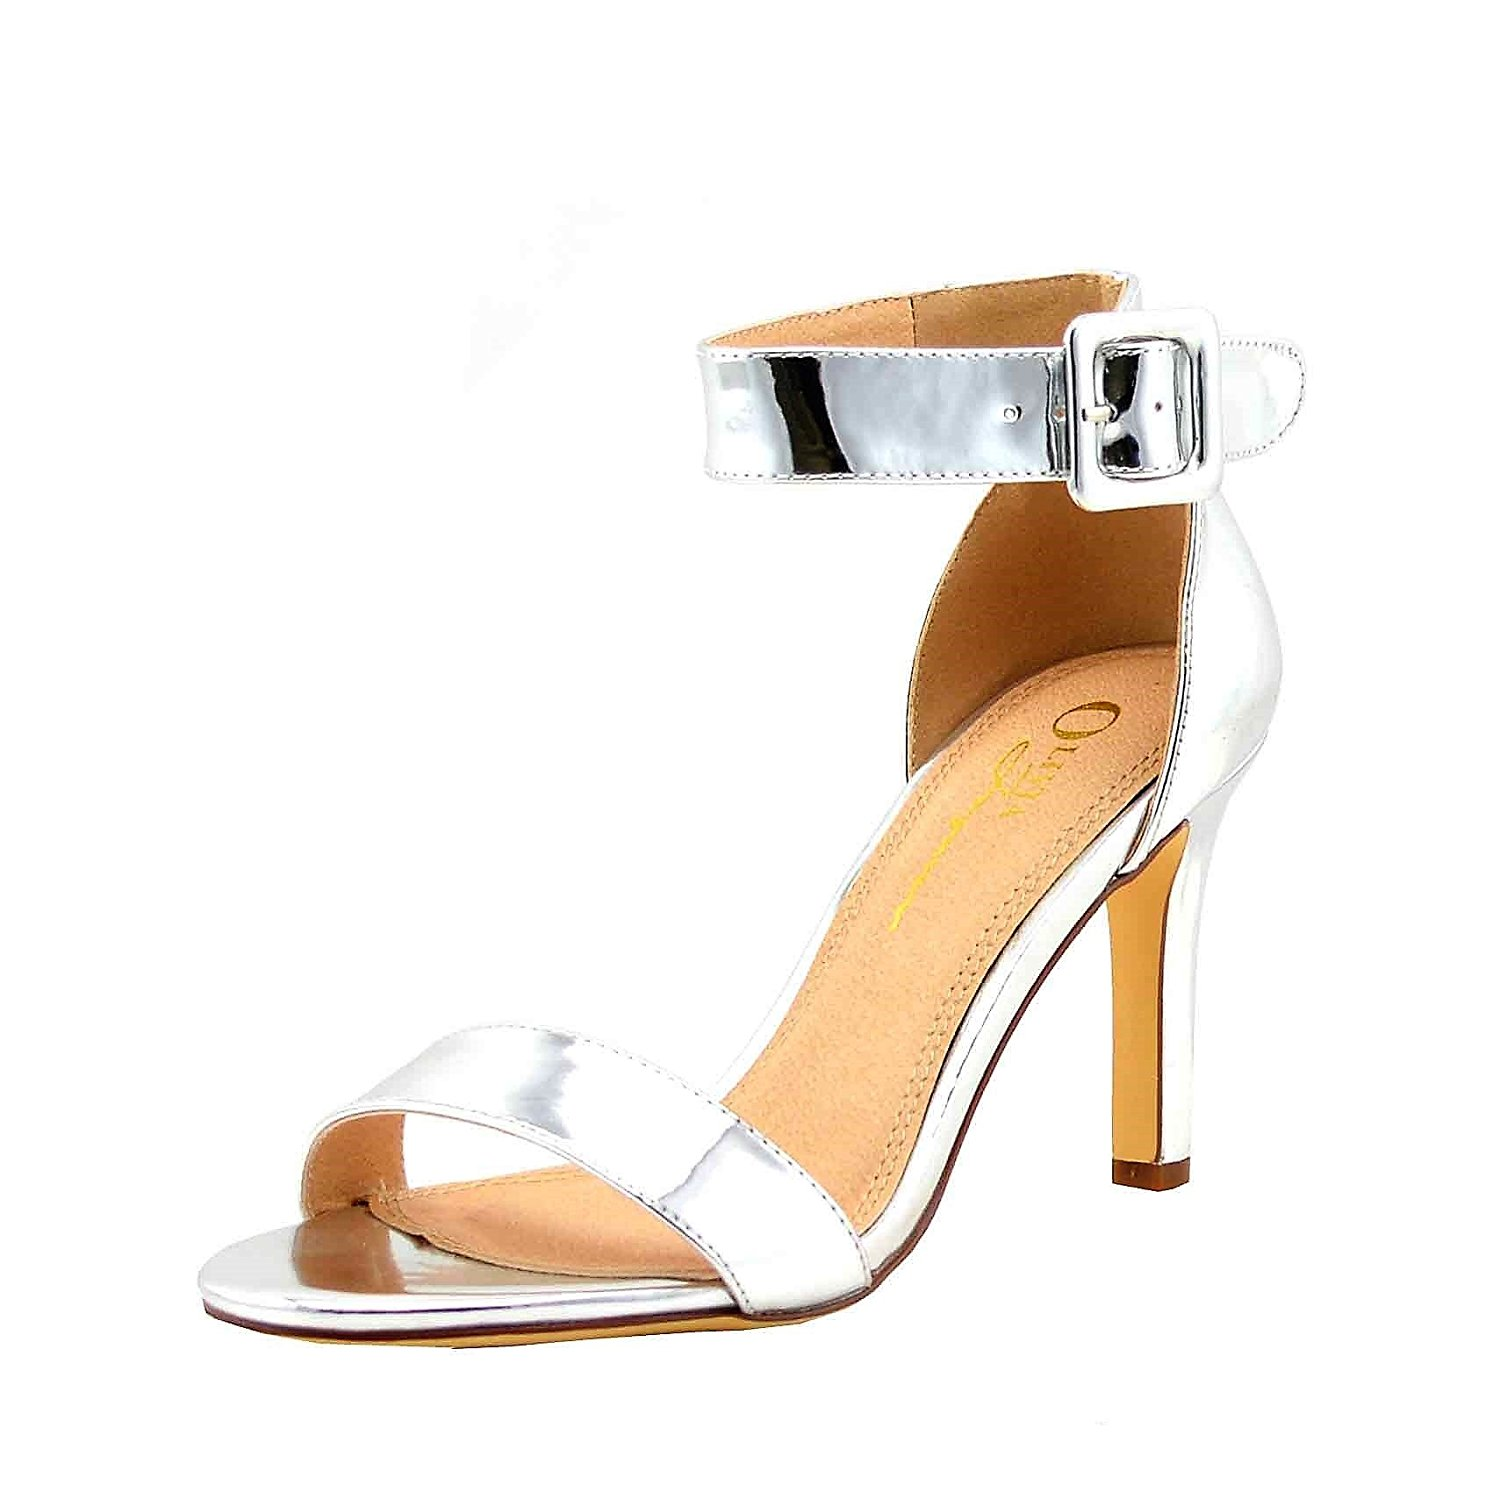 Olivia Jaymes Women's Casual Sandal Round Open Toe One Band Ankle Buckle Strap | Mid Kitten Heel Sandals